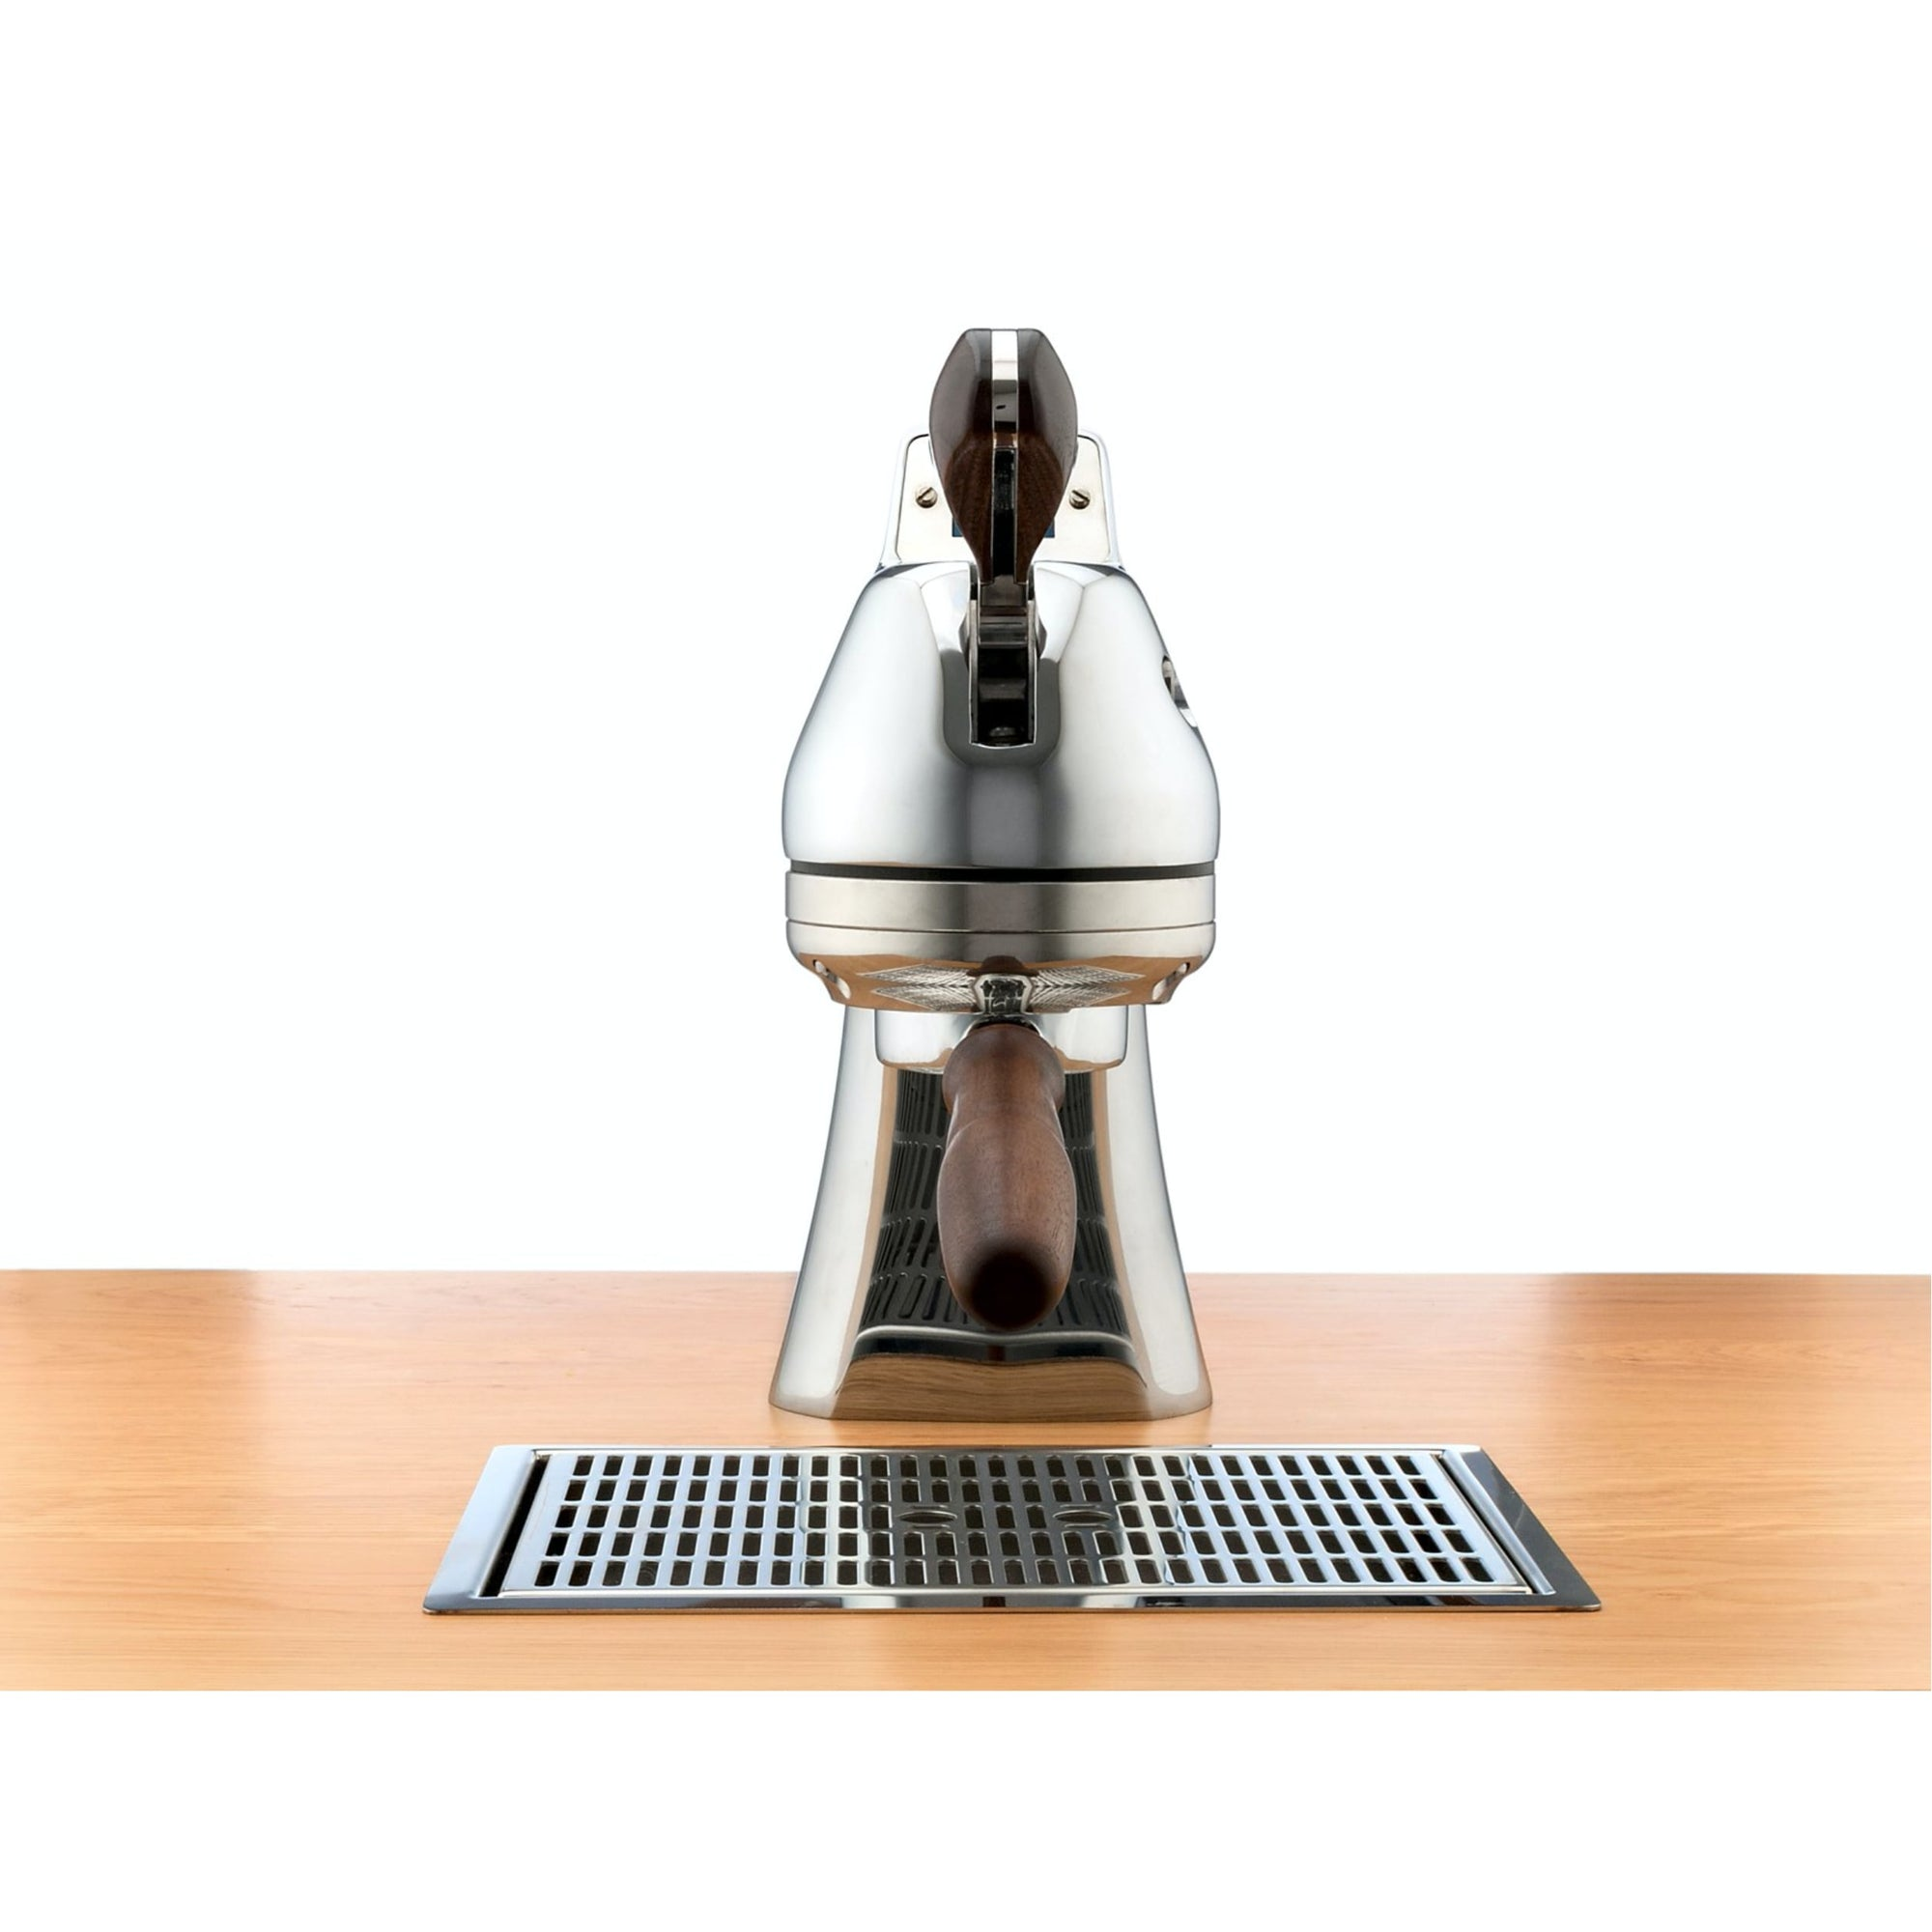 Modbar EP Espresso Coffee Machine